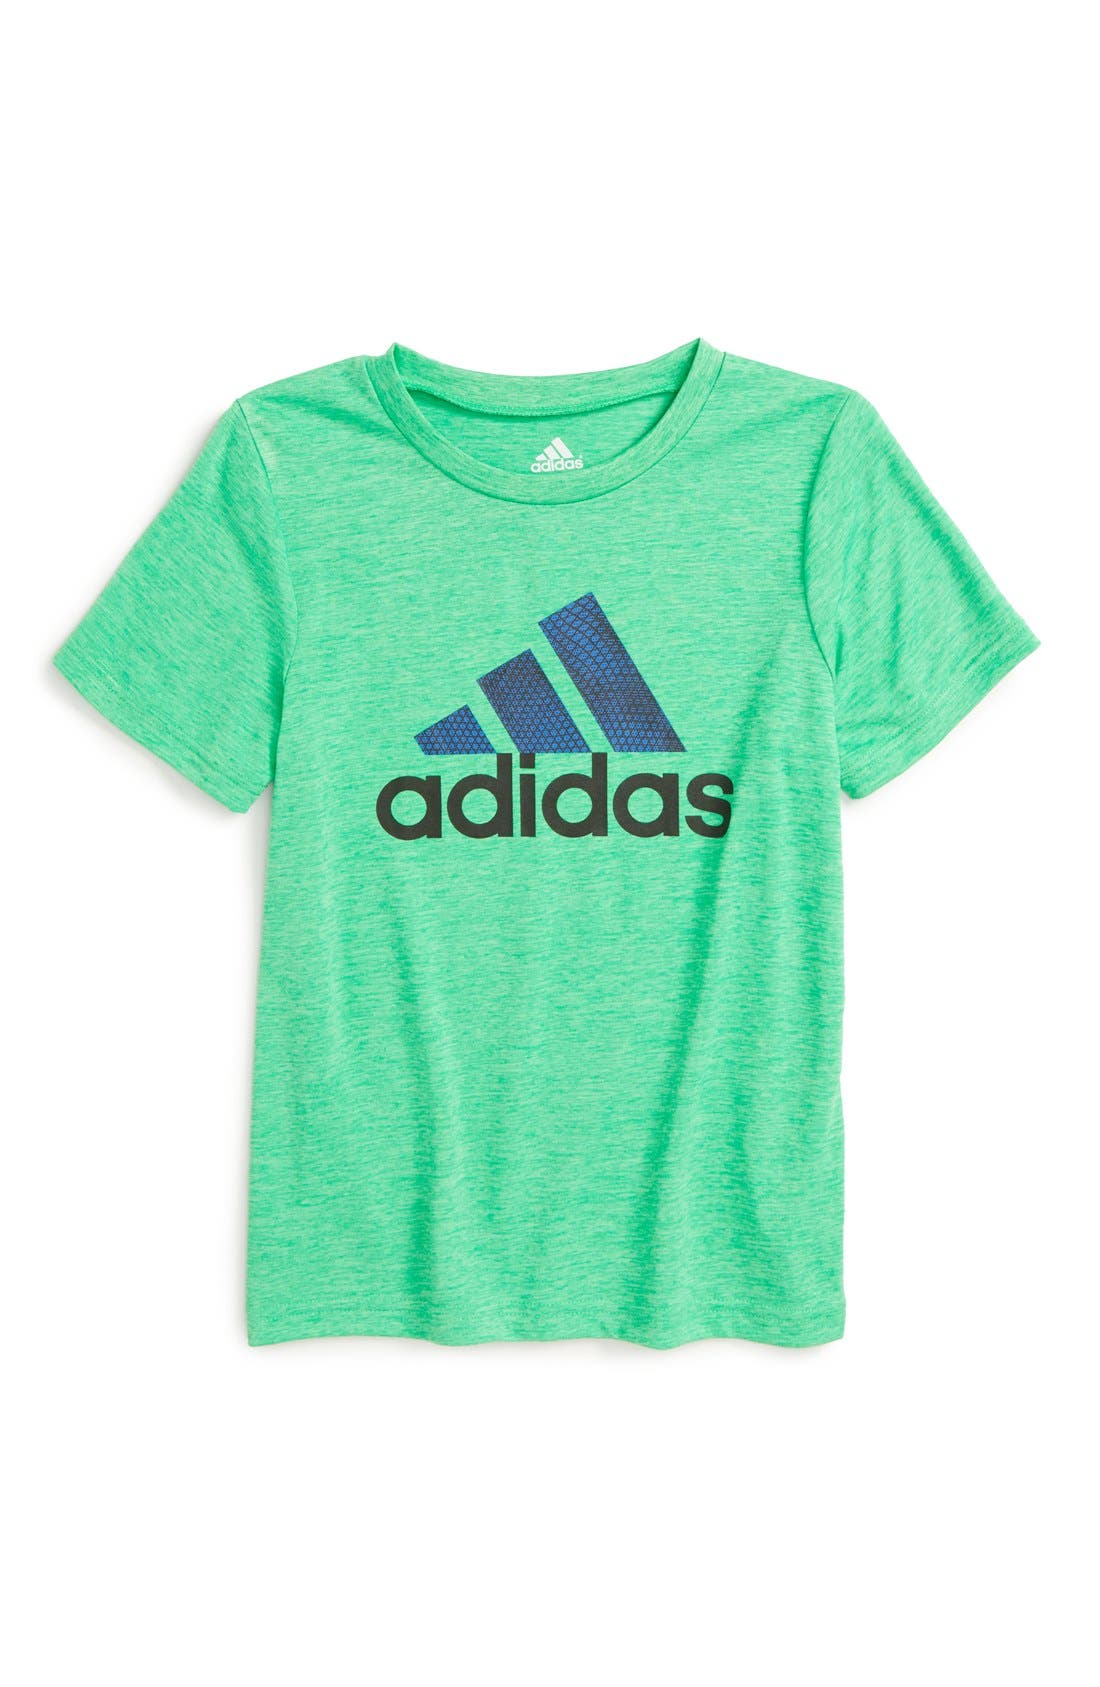 Main Image - adidas 'Game On' CLIMALITE® T-Shirt (Toddler Boys & Little Boys)